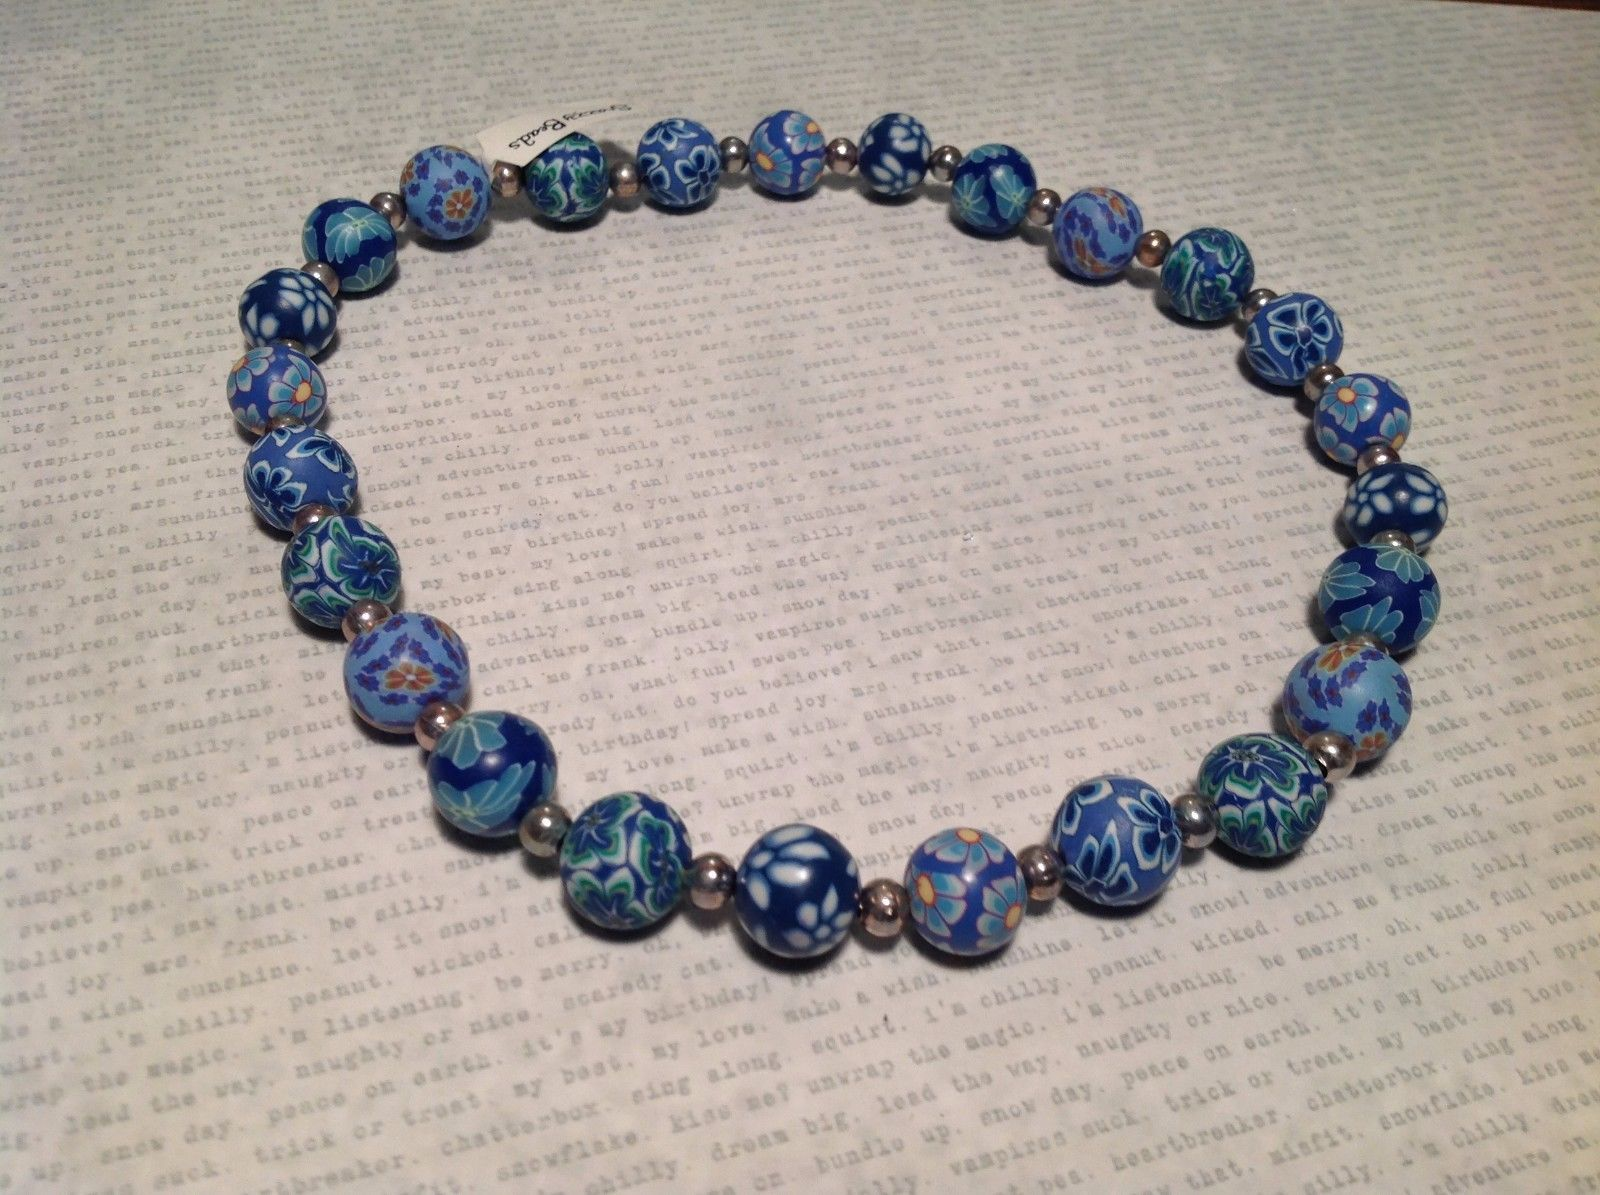 NEW Blue Snazzy Silvertoned Beaded Necklace w Elastic Band